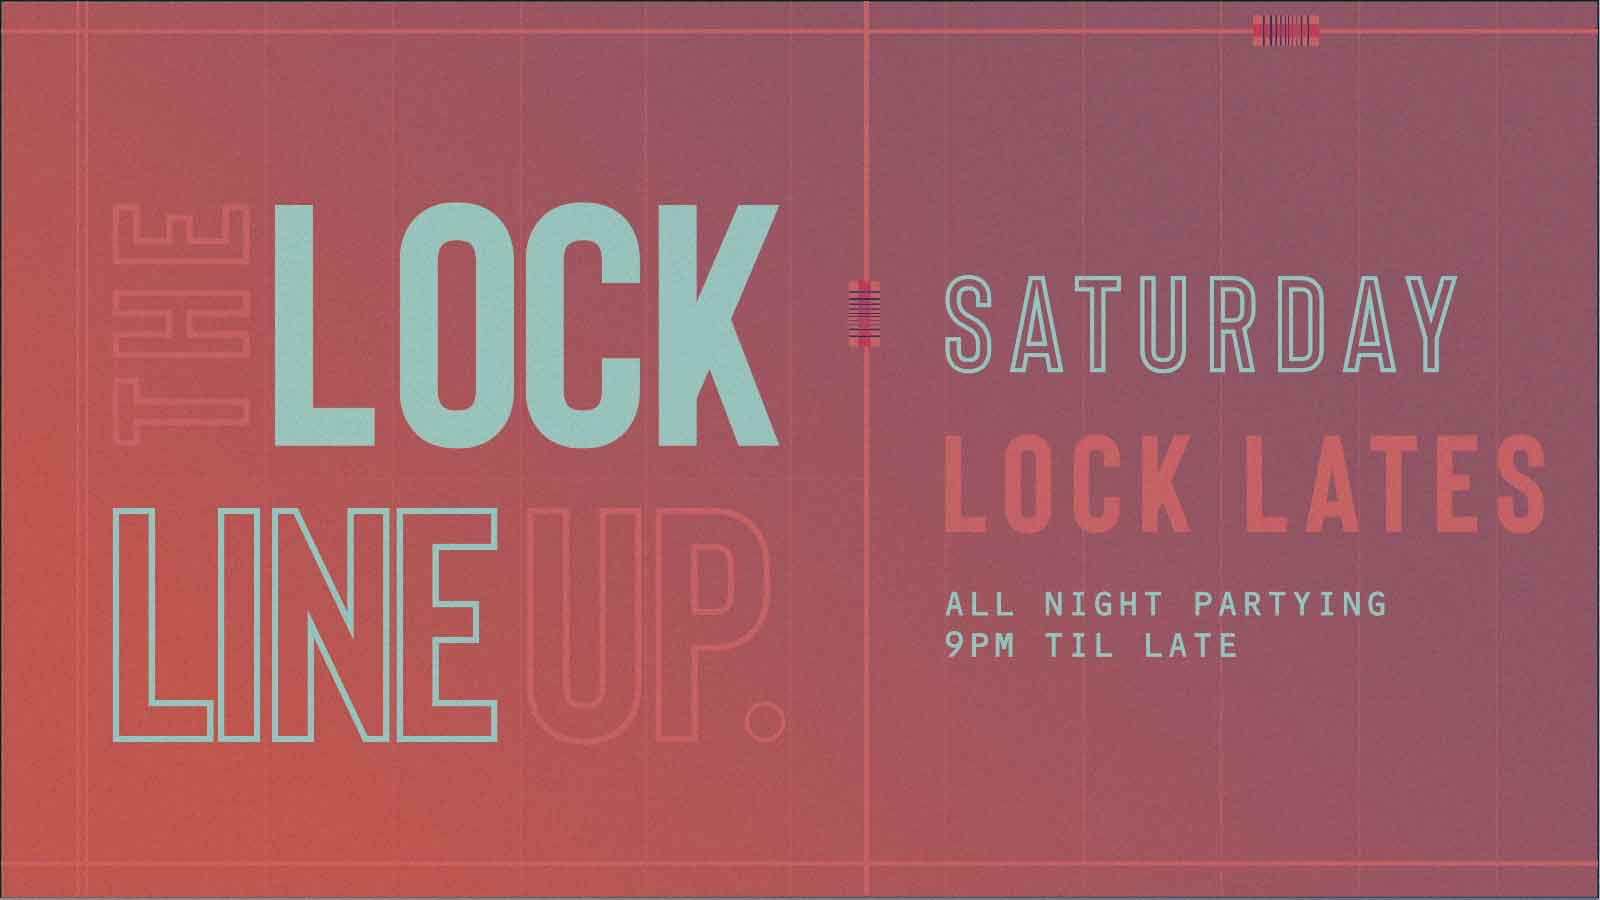 Lock Lates – Every Saturday